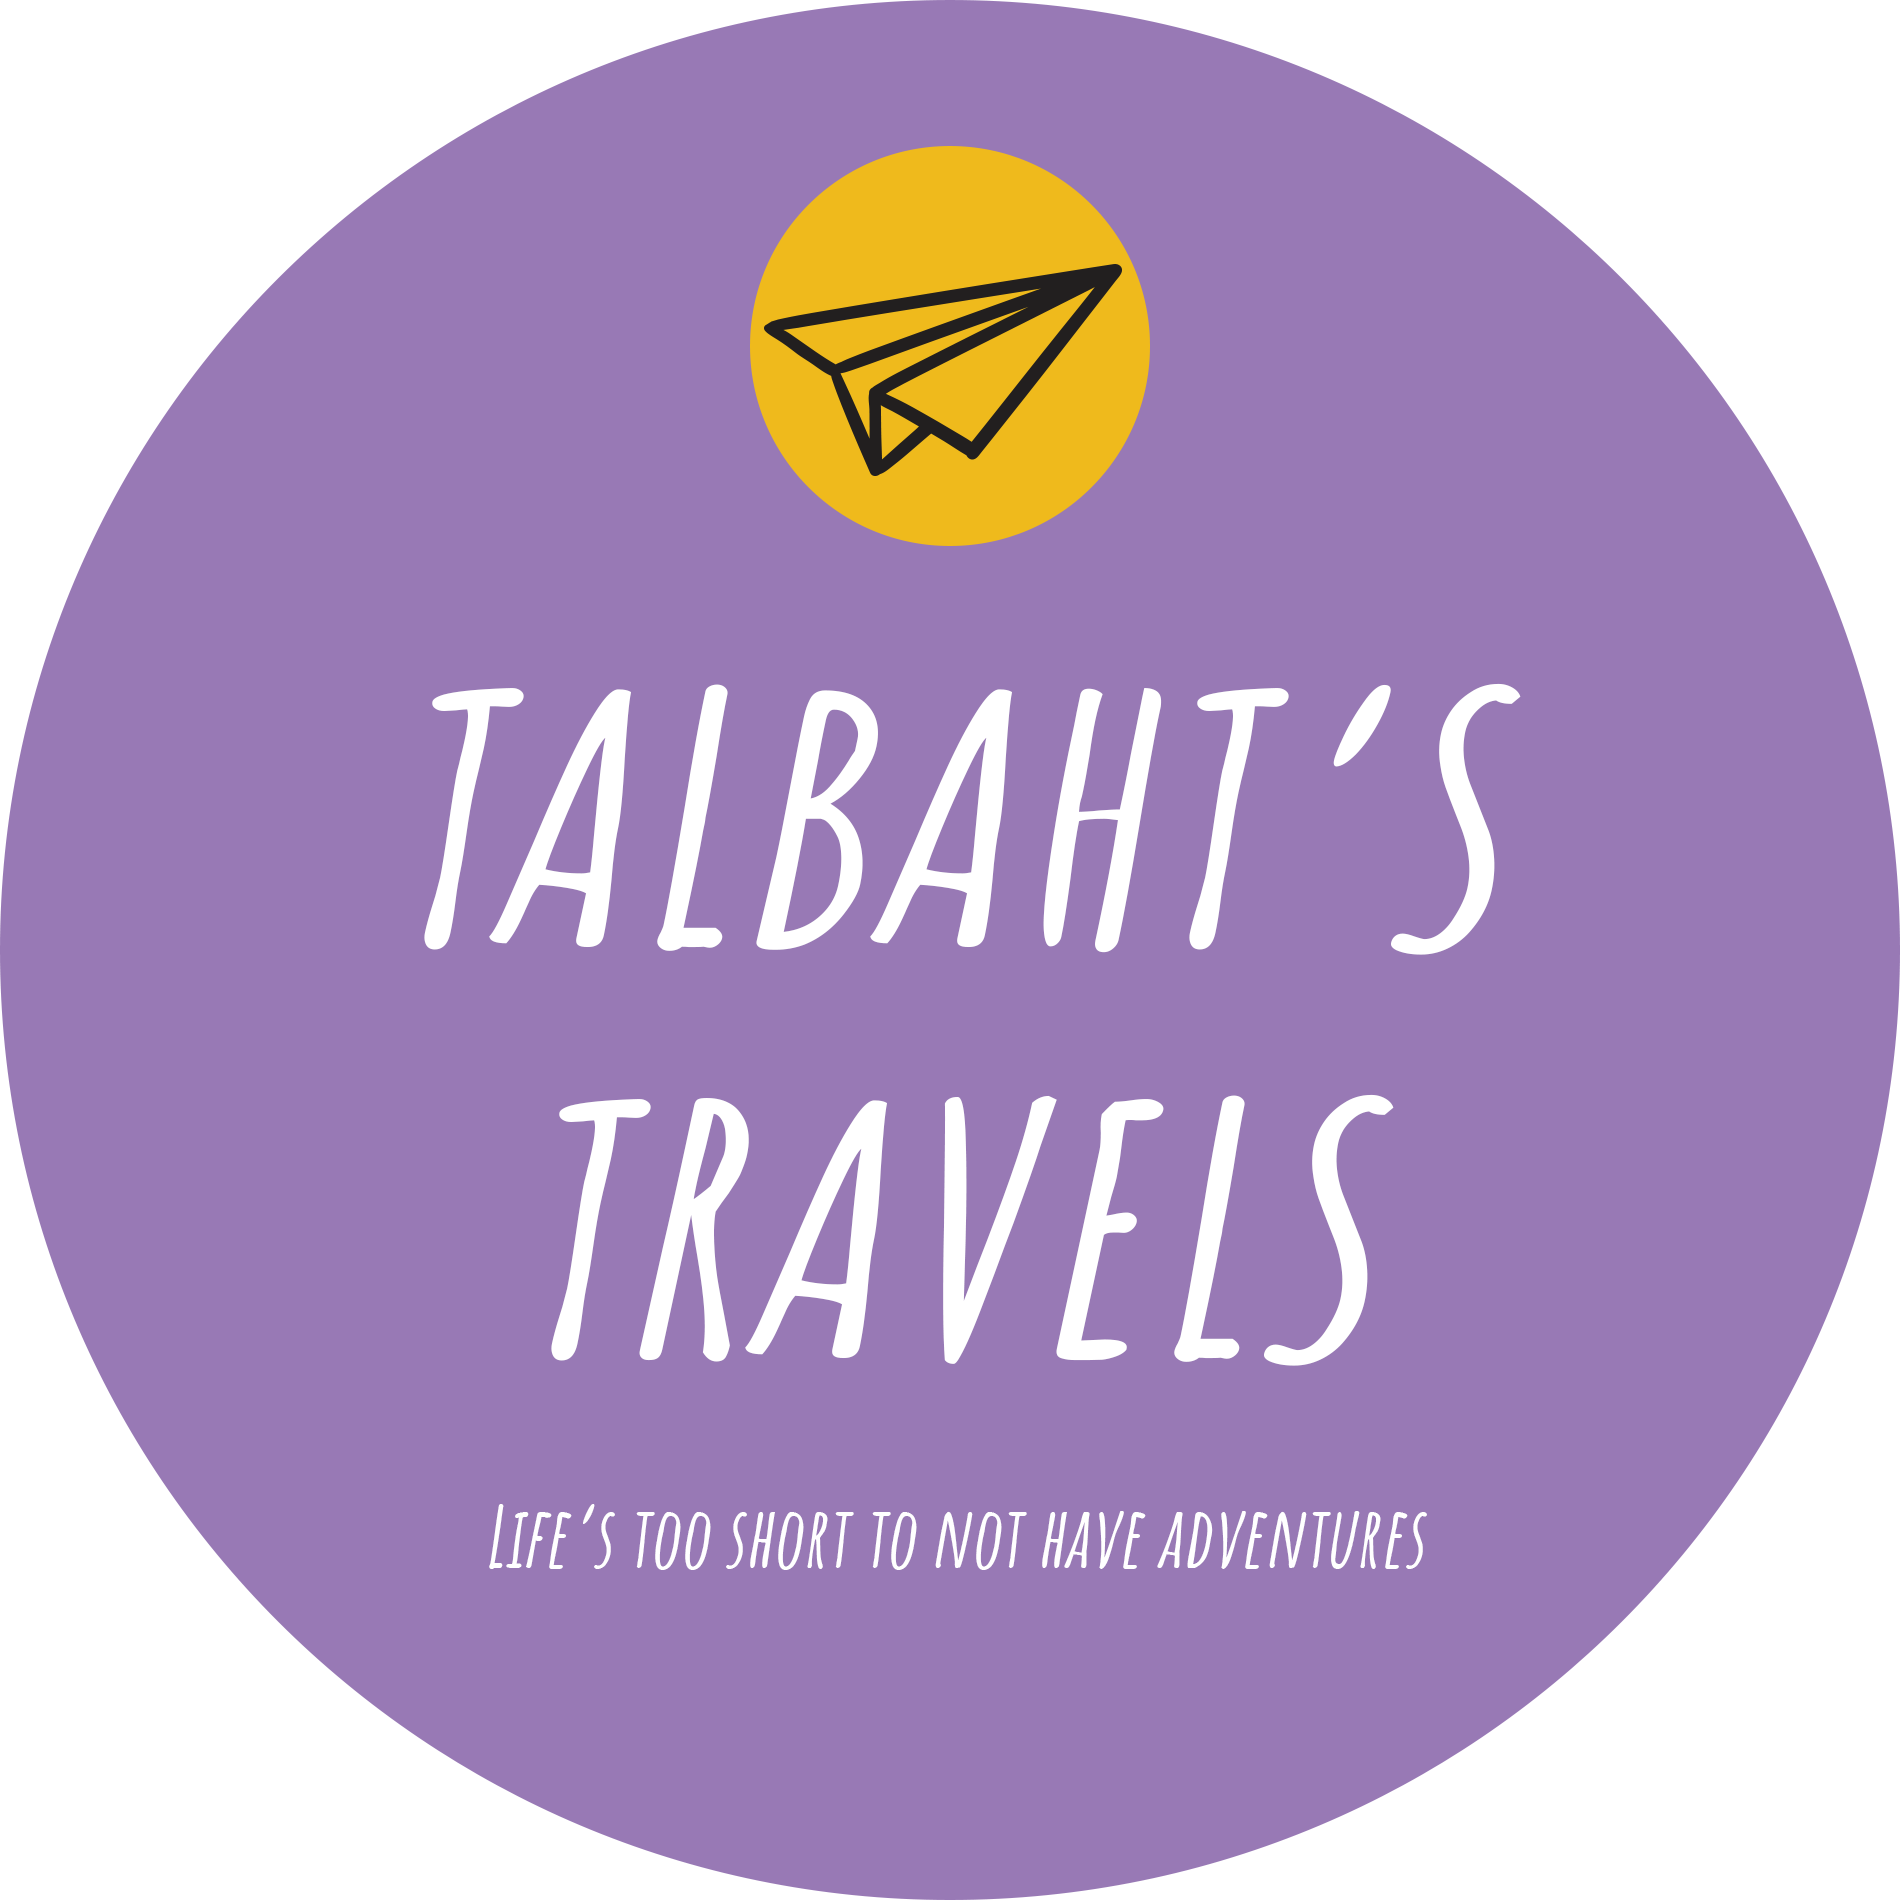 talbaht's travels